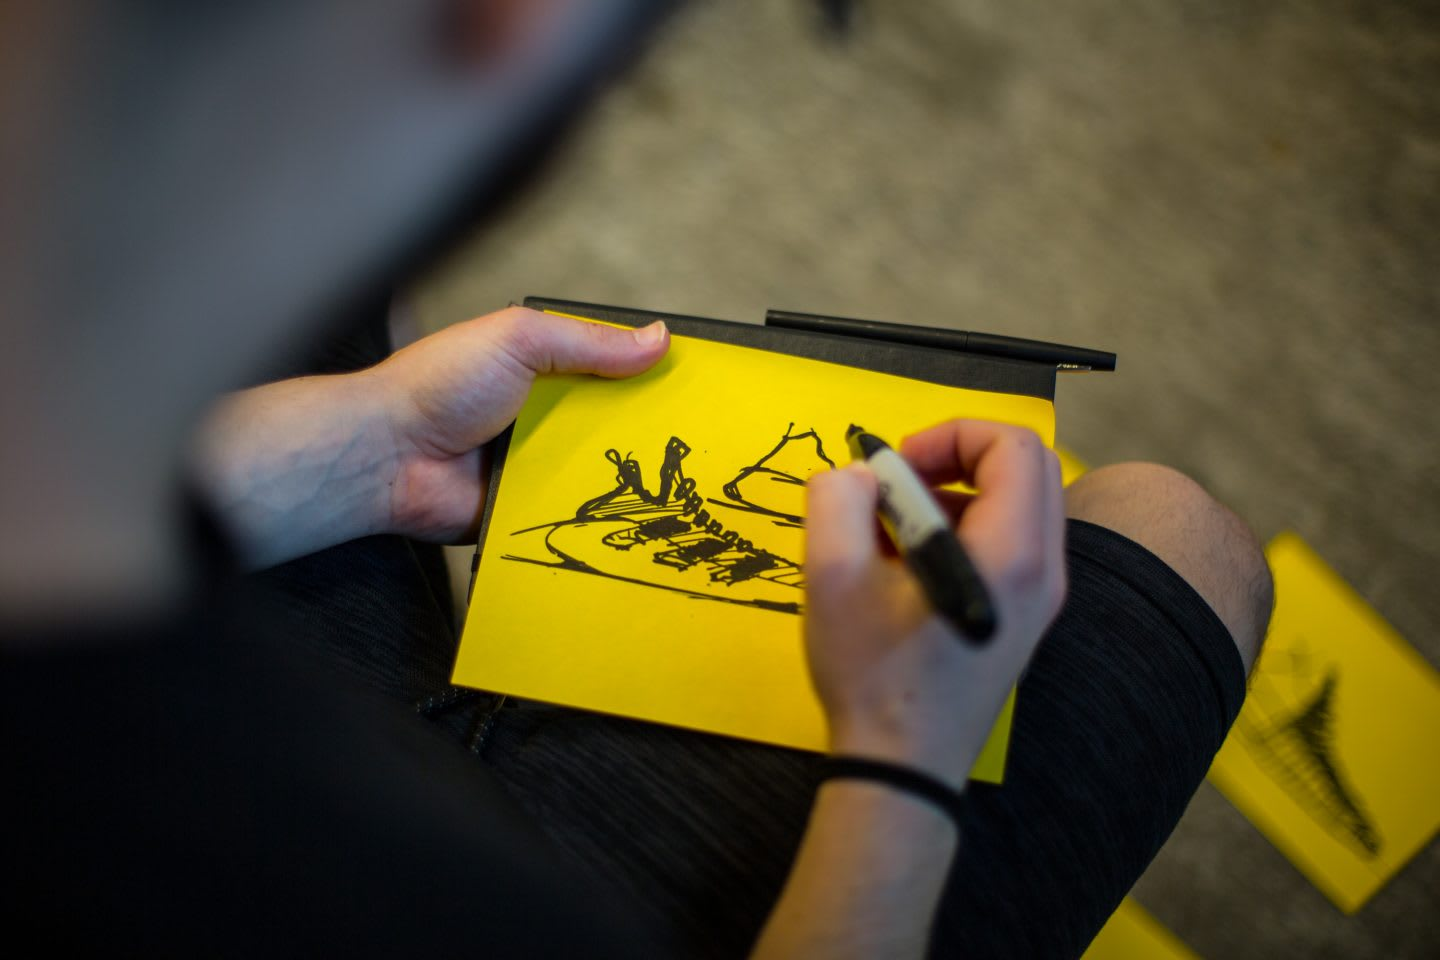 Someone drawing a quick sketch of an adidas sneaker, idea generation, design, footwear design, sketching, creative work, creativity, work processes, Brooklyn Creator Farm, adidas, GamePlan A